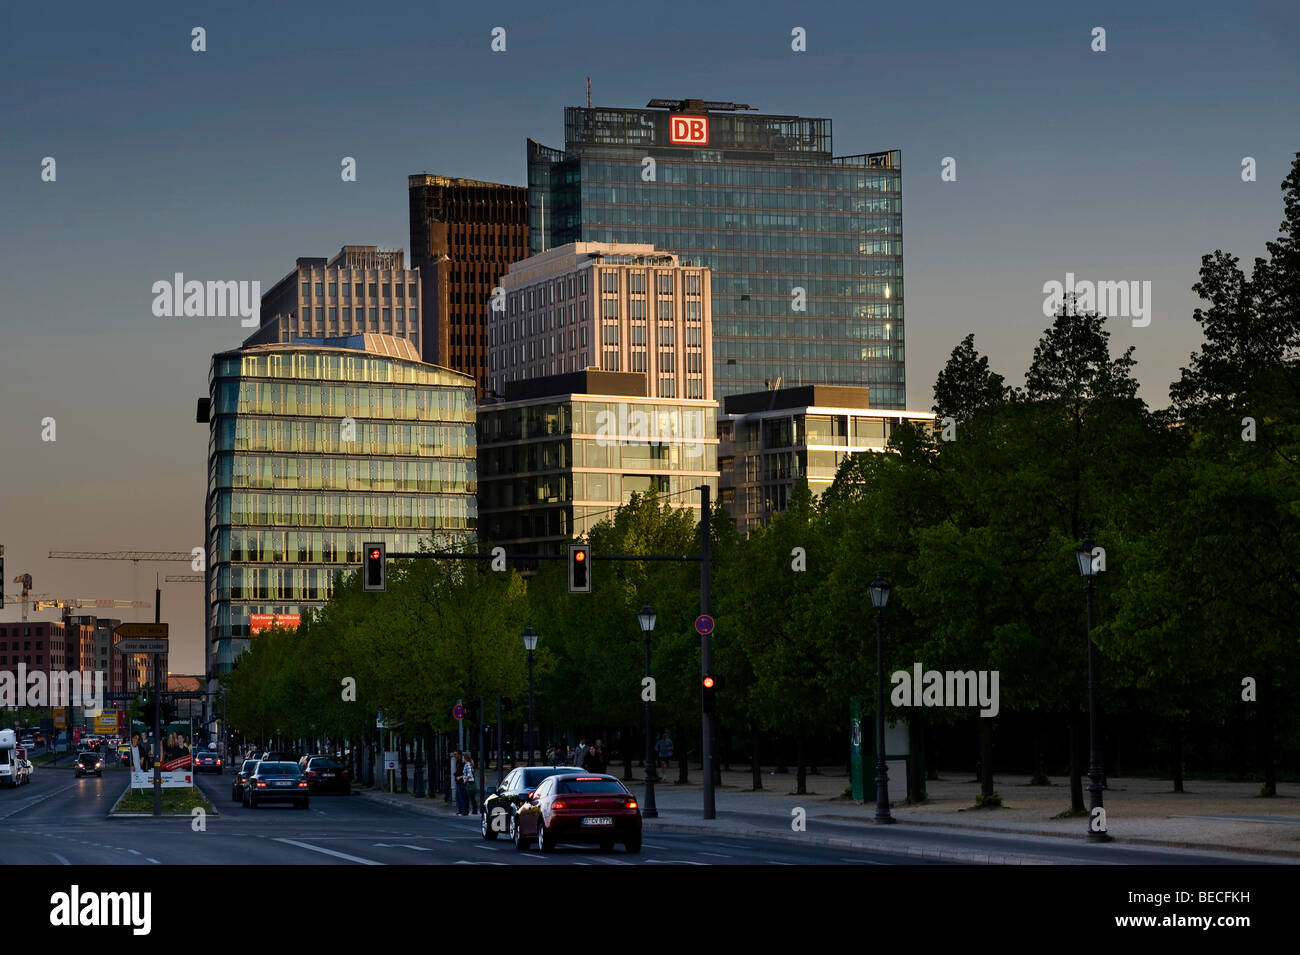 High-rise buildings on Potsdamer Platz, Potsdam Square, Berlin, Germany, Europe - Stock Image